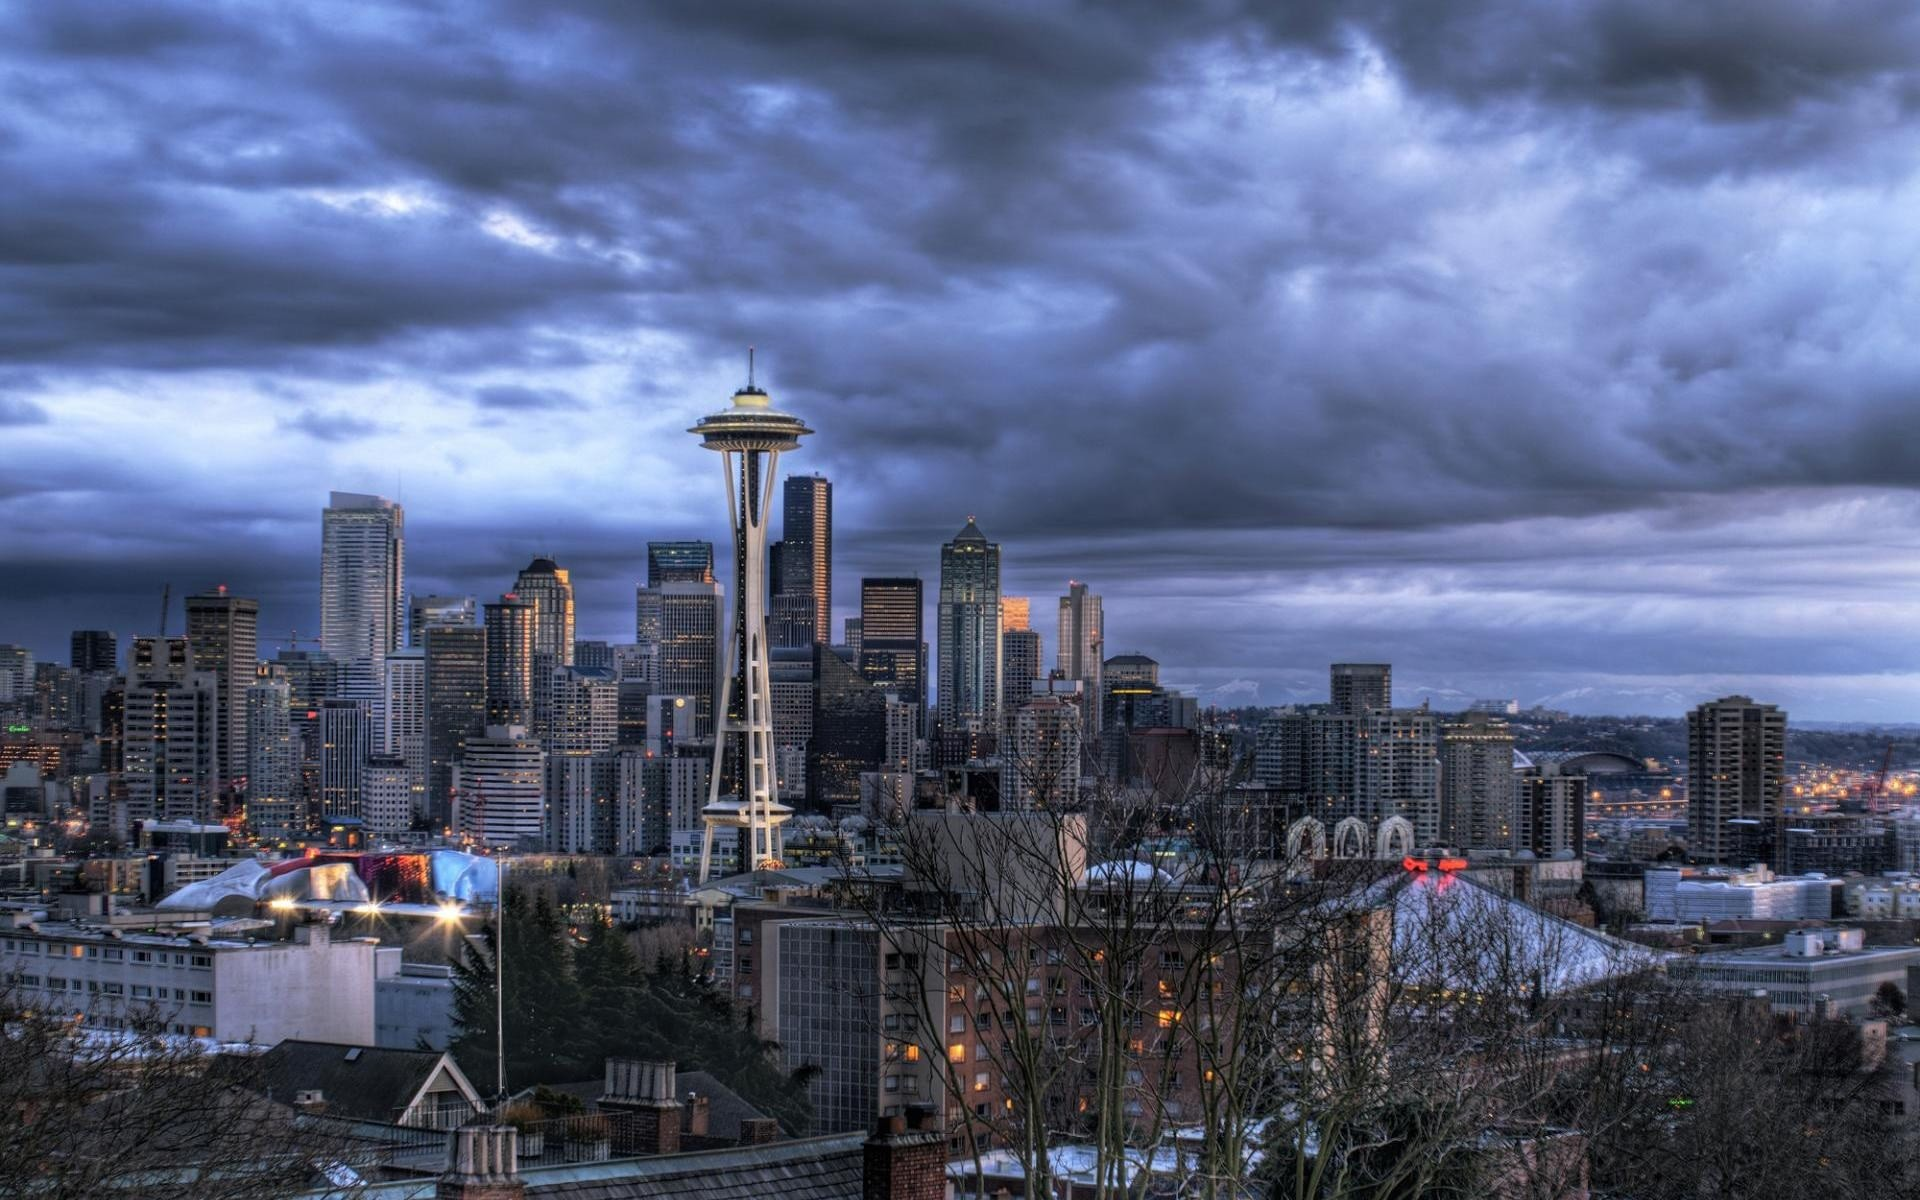 Seattle Rain Wallpaper 72 images 1920x1200